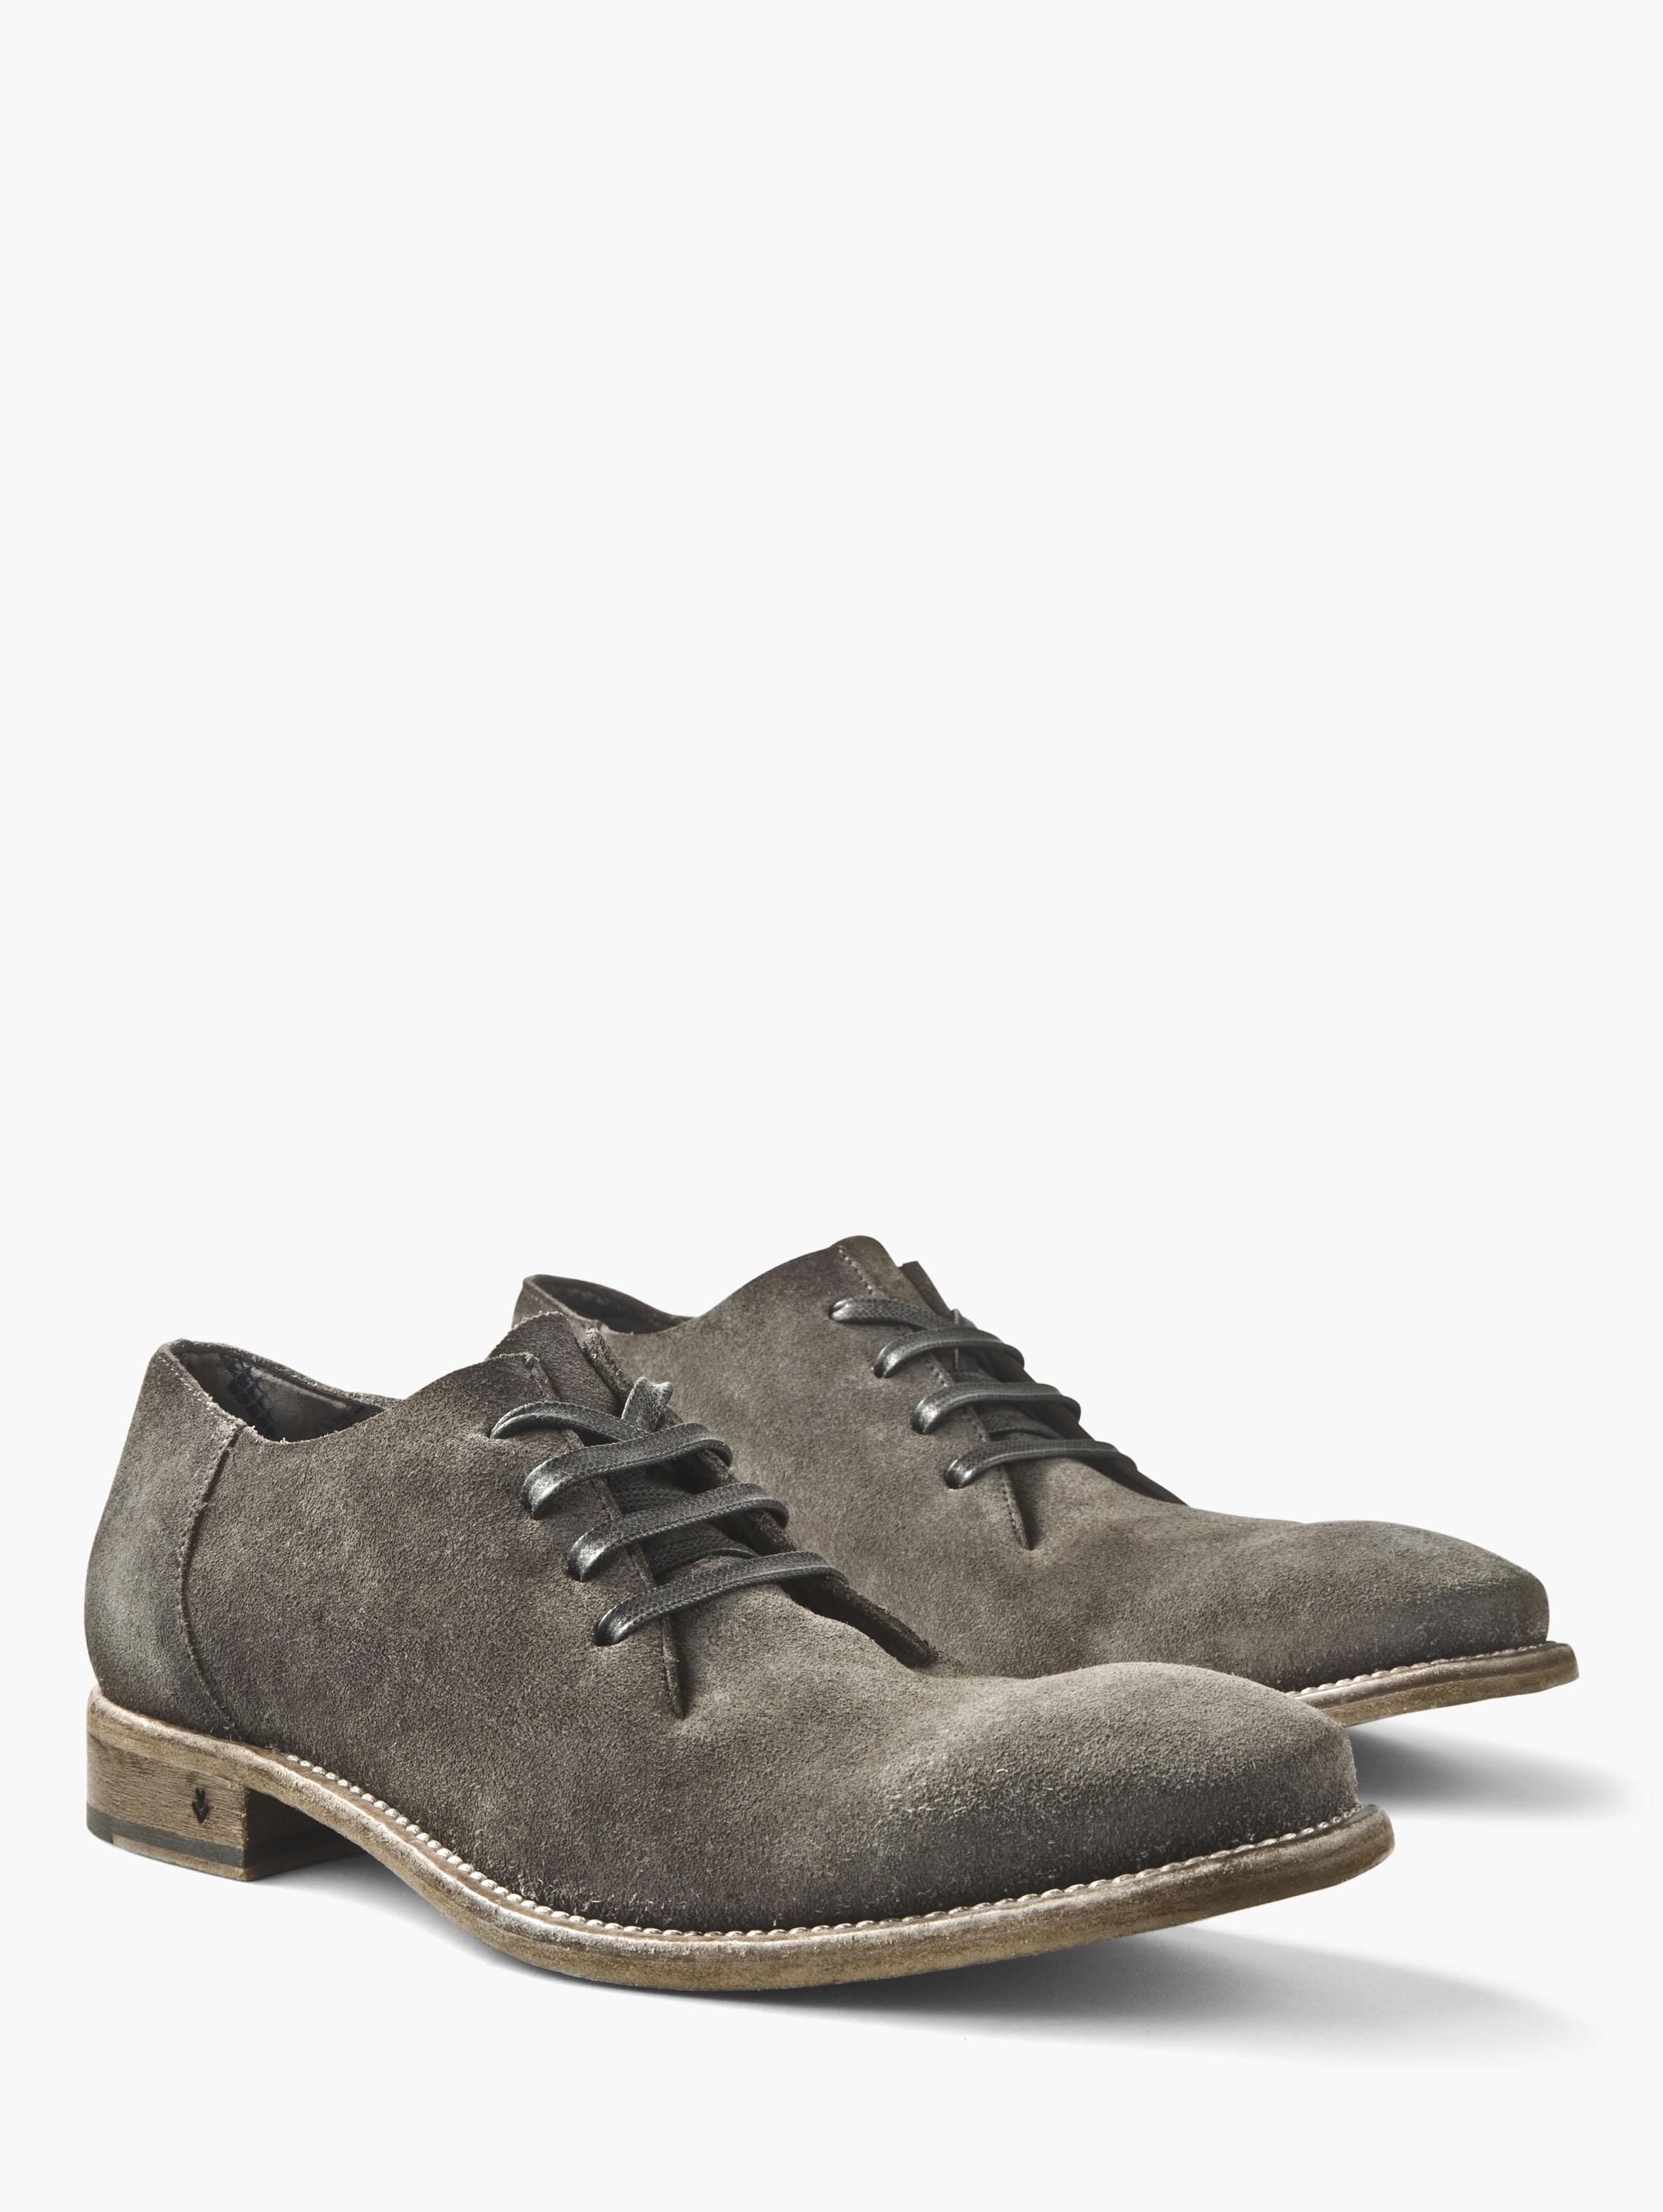 Fleetwood Oxford Shoe